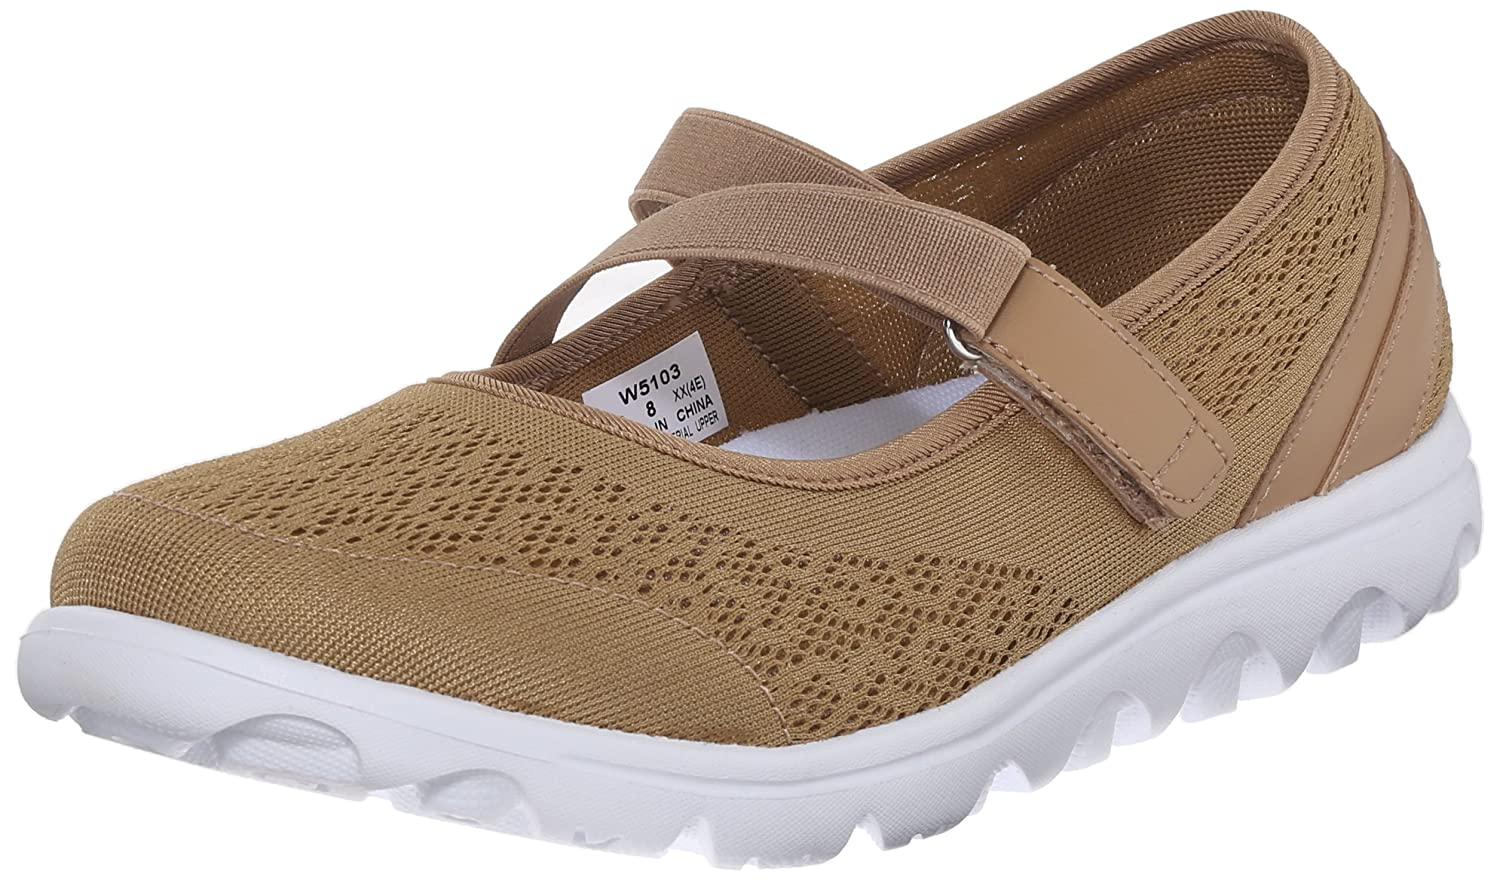 Propet Women's TravelActiv Mary Jane Fashion Sneaker B0118FL6I0 7.5 B(M) US|Honey